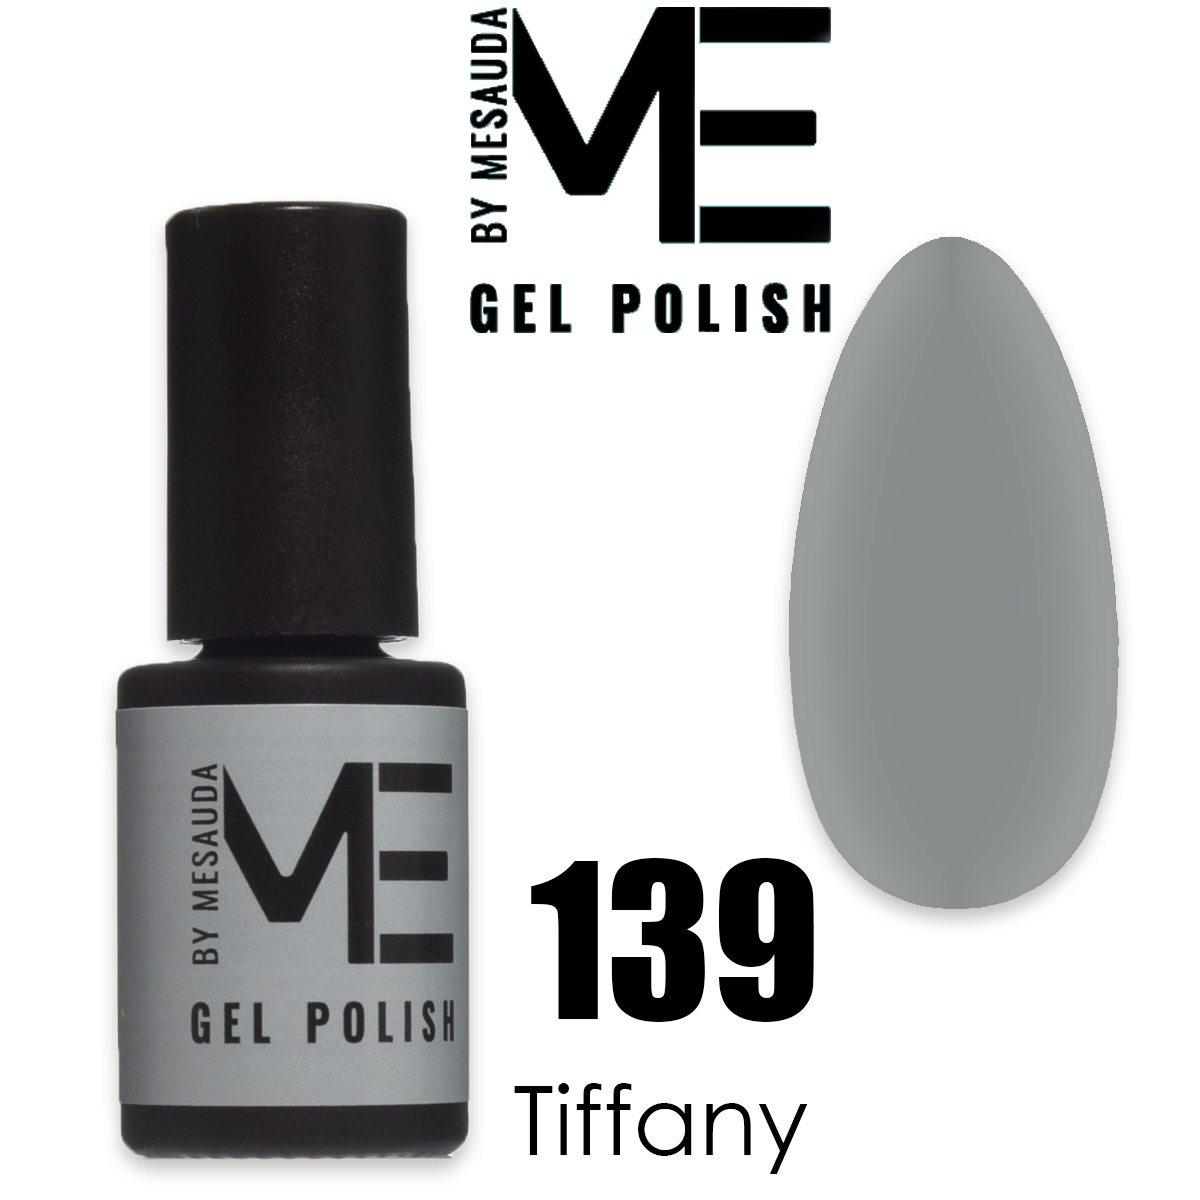 Mesauda me 5 ml gel polish 139 tiffany